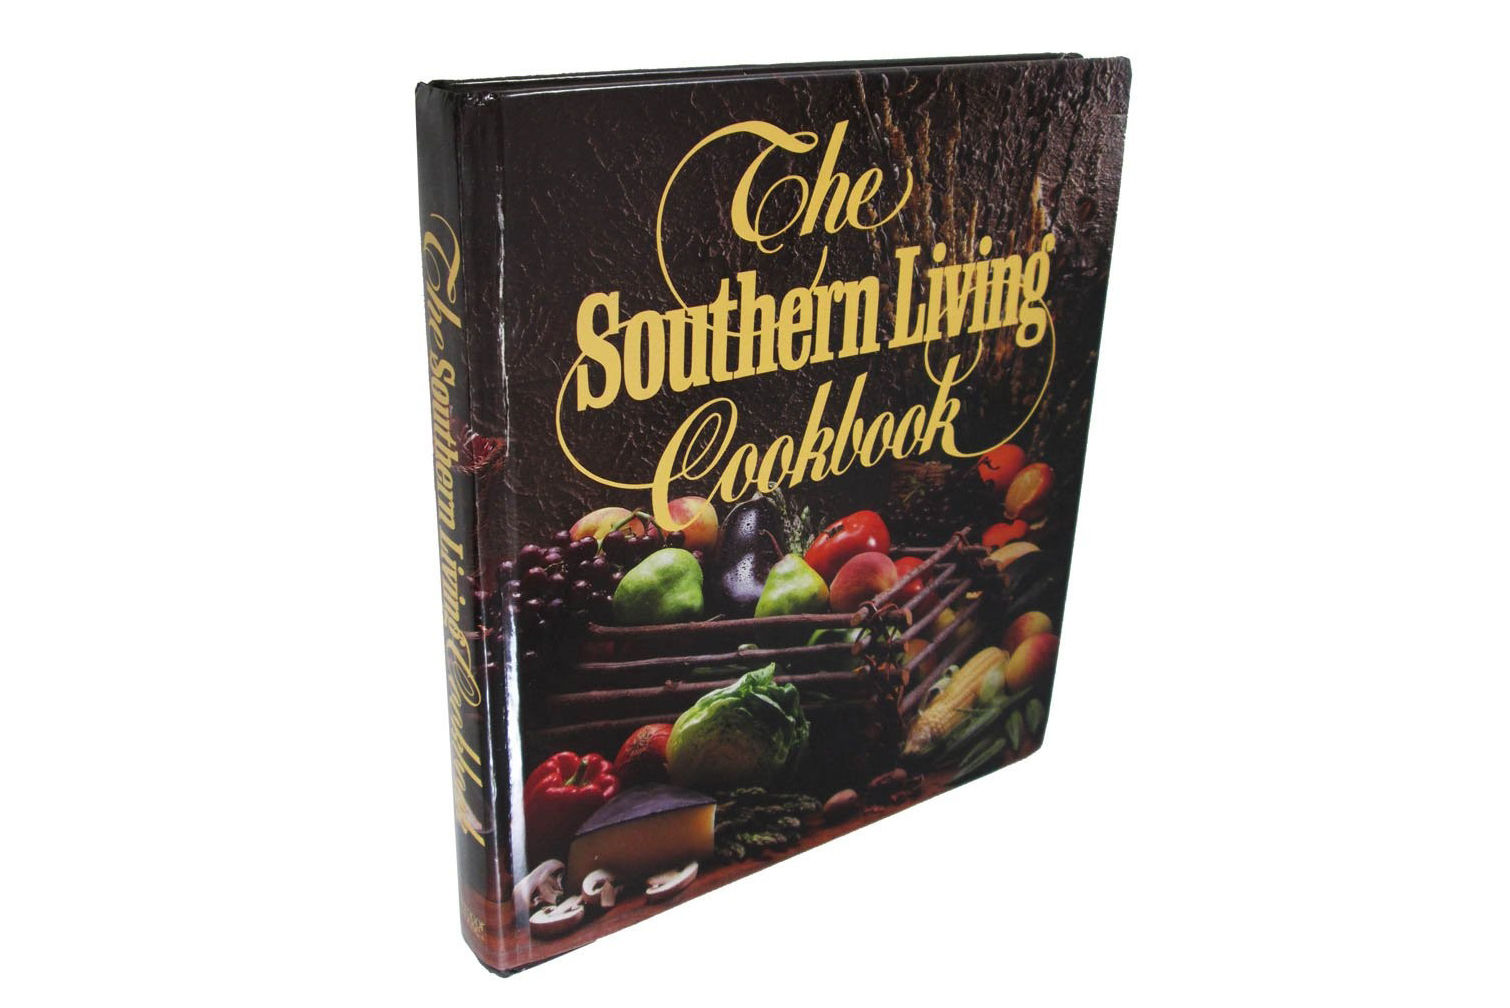 This Is The Only Cookbook Our Food Editor Depends On For Southern Classics